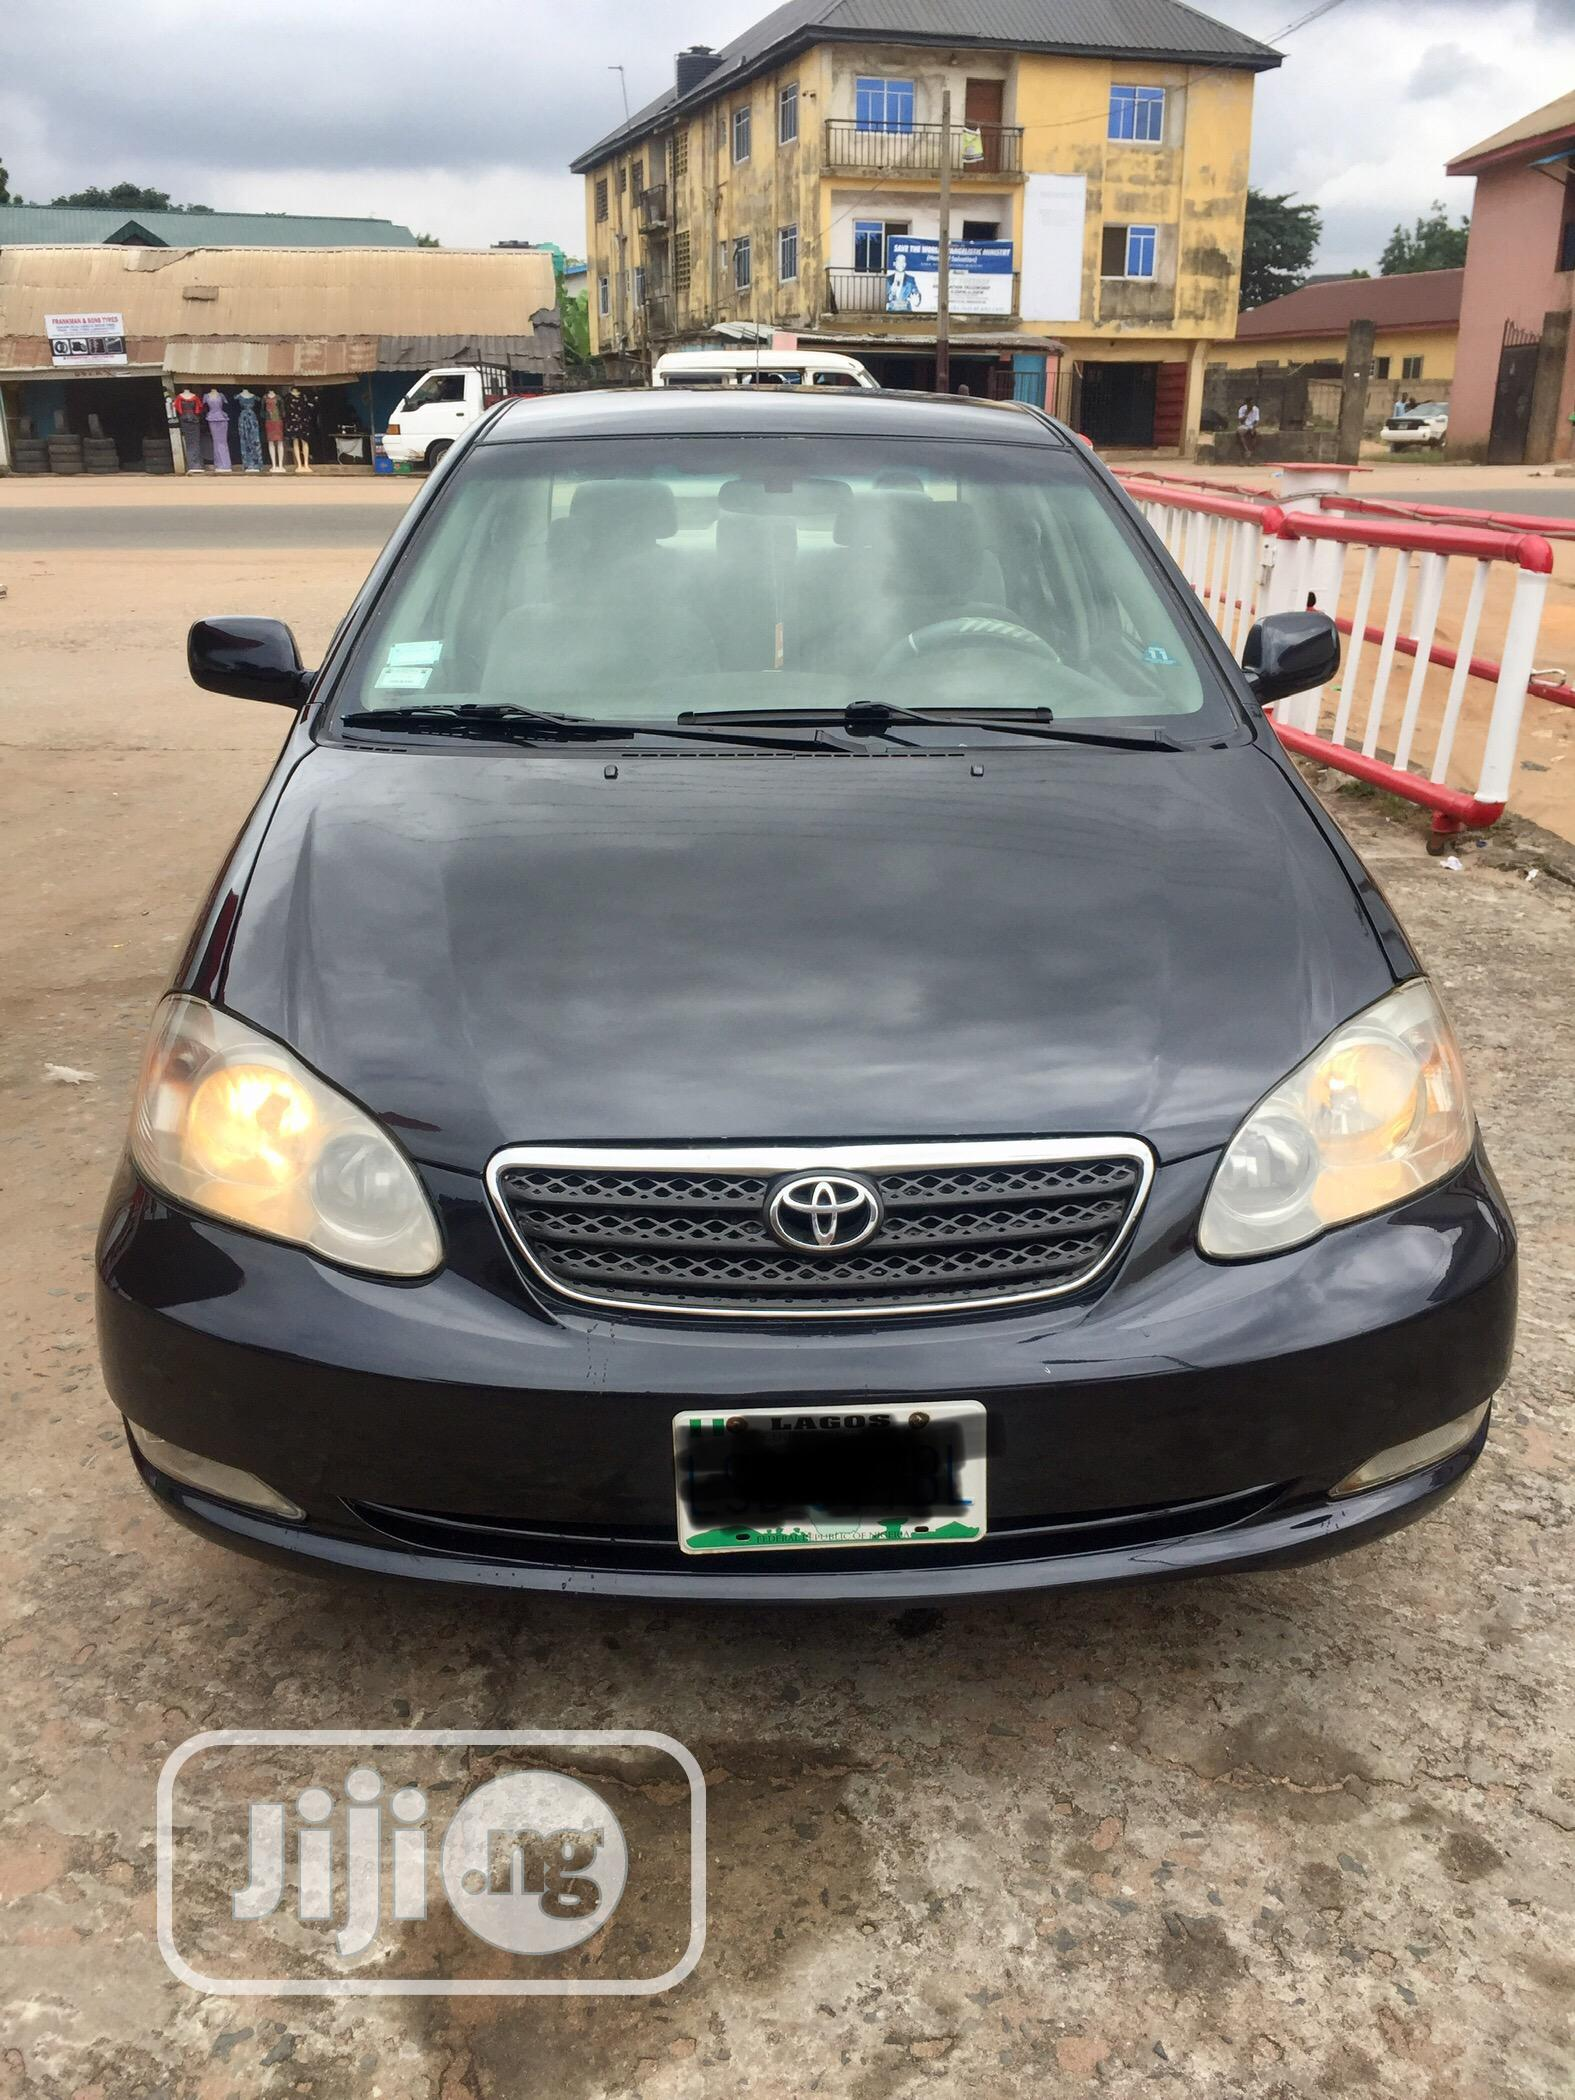 Toyota Corolla 2005 Le Black In Owerri Cars Adonis Uche Jiji Ng For Sale In Owerri Buy Cars From Adonis Uche On Jiji Ng